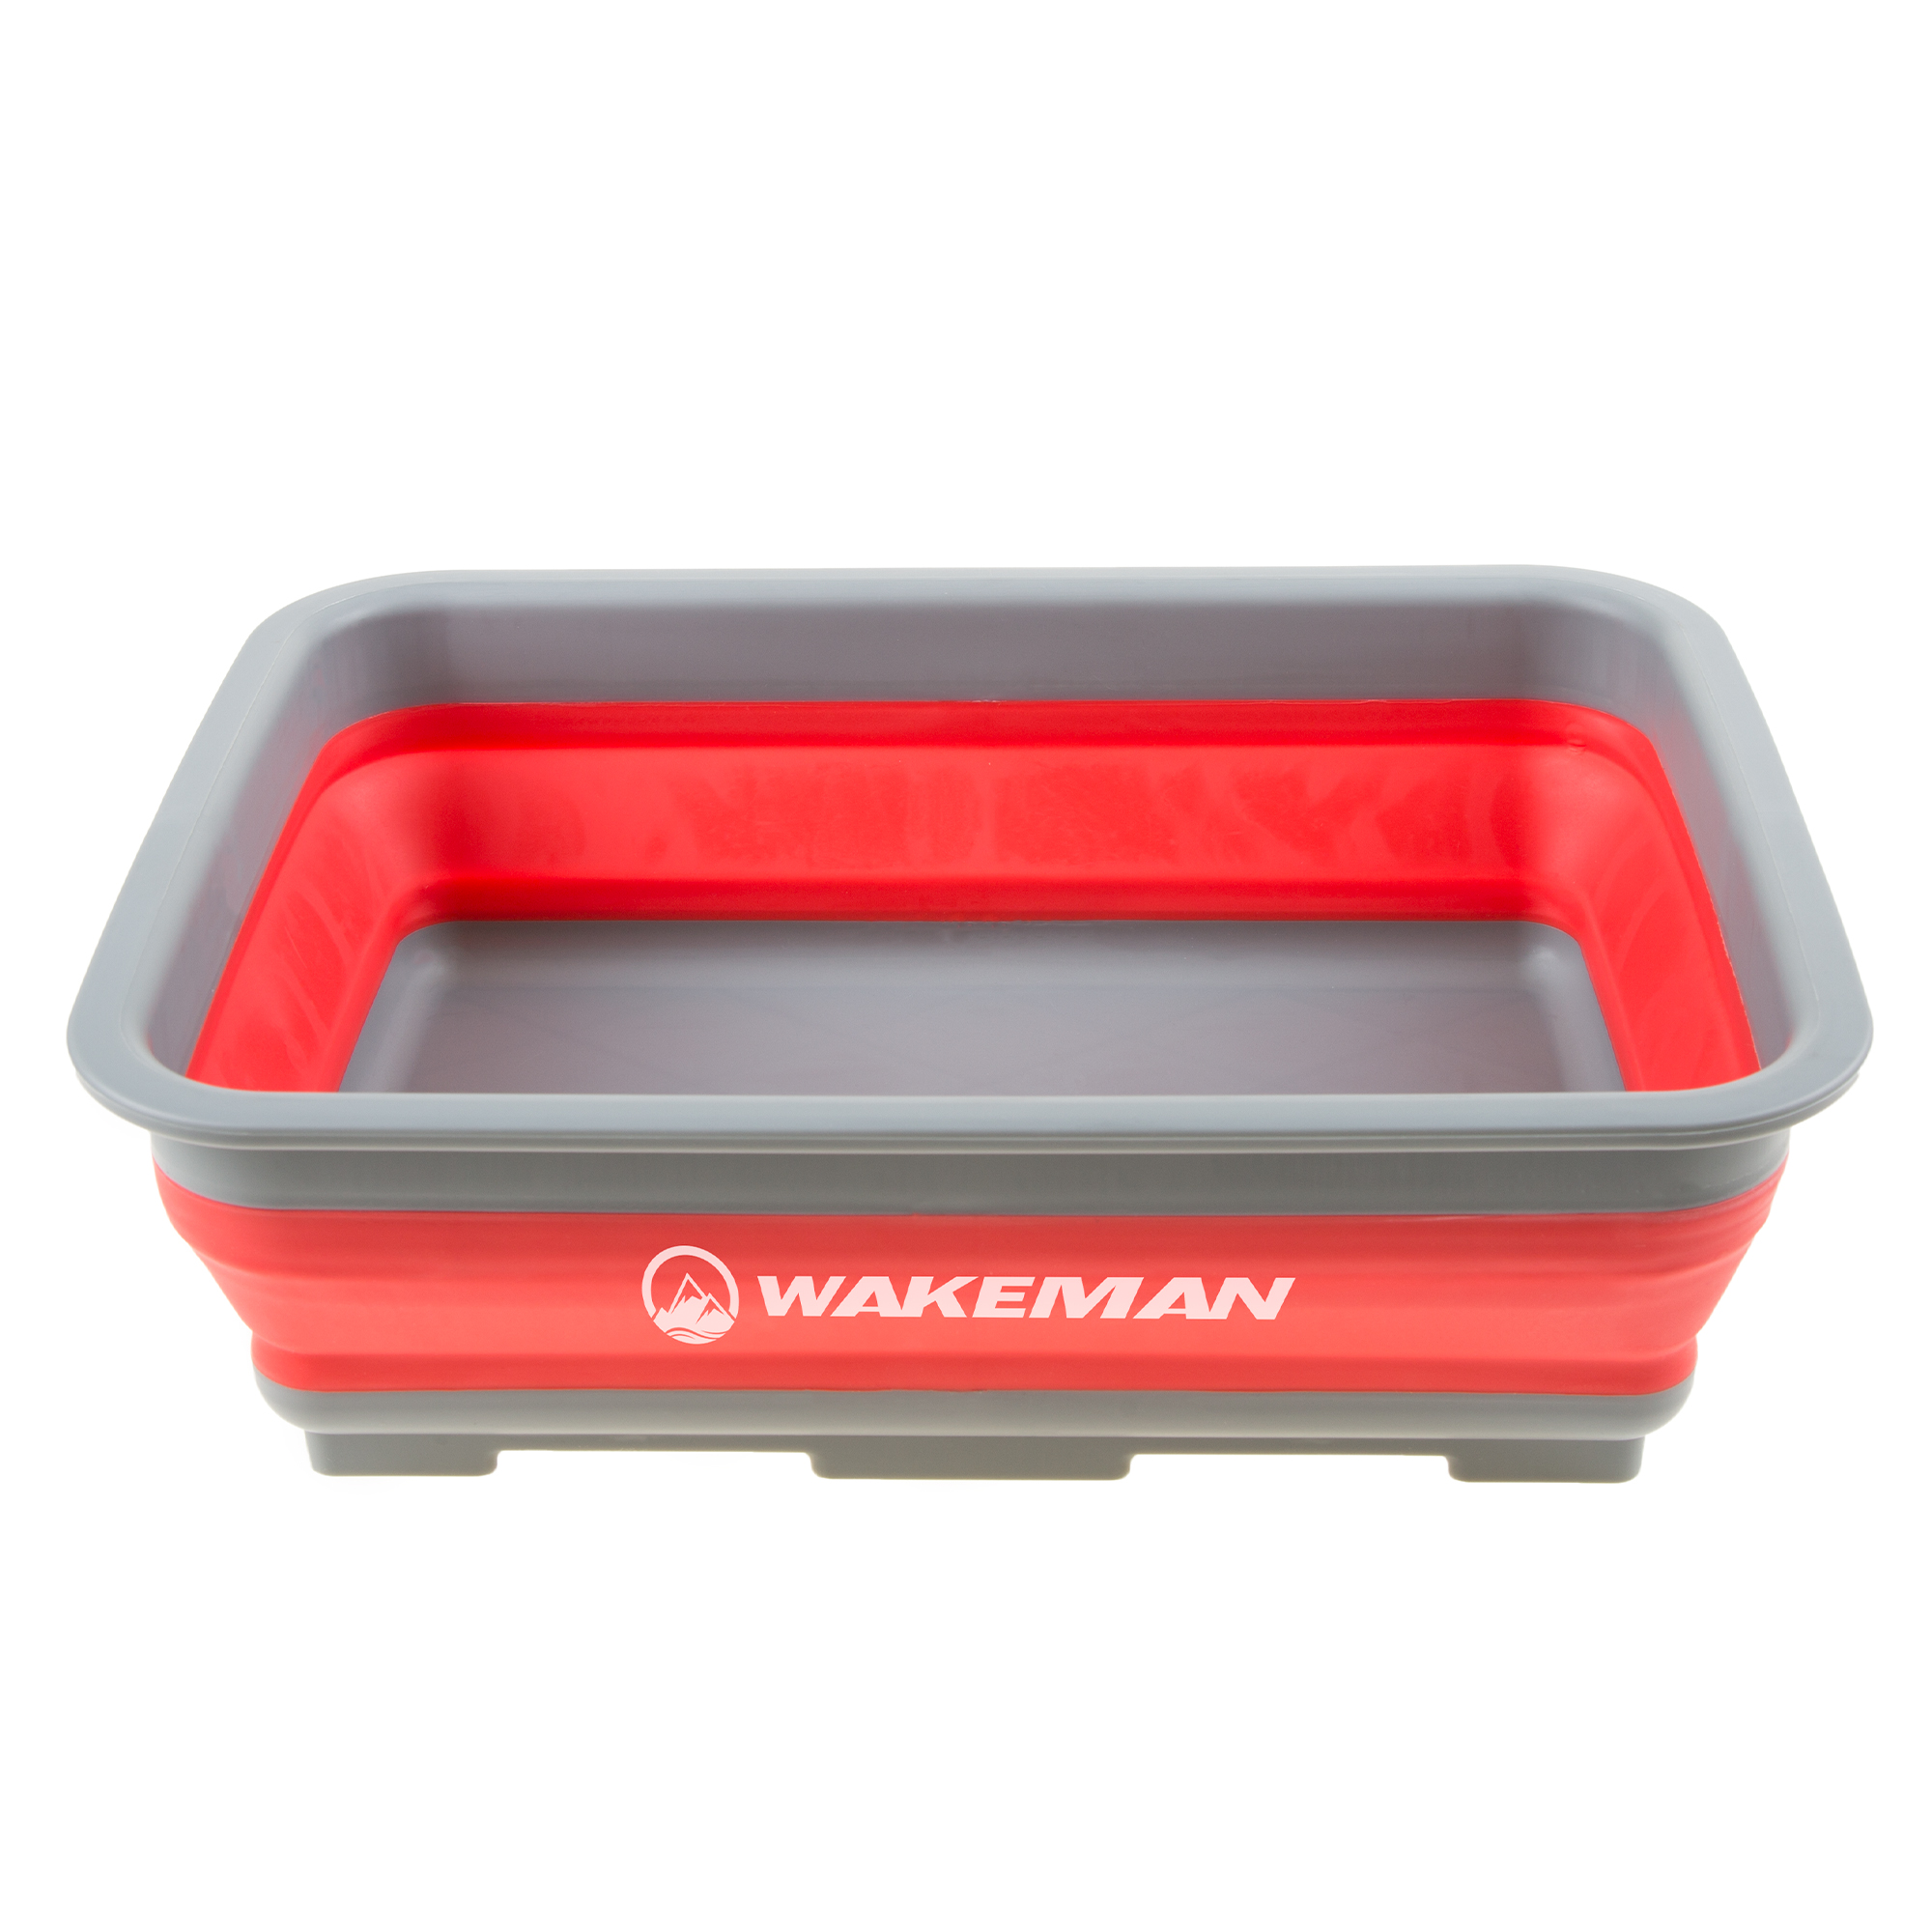 Wakeman Collapsible Multiuse Wash Bin- Portable Wash Basin//Dish Tub//Ice Bucket with 10 L Capacity for Camping Tailgating Blue 2 Pack More Outdoors